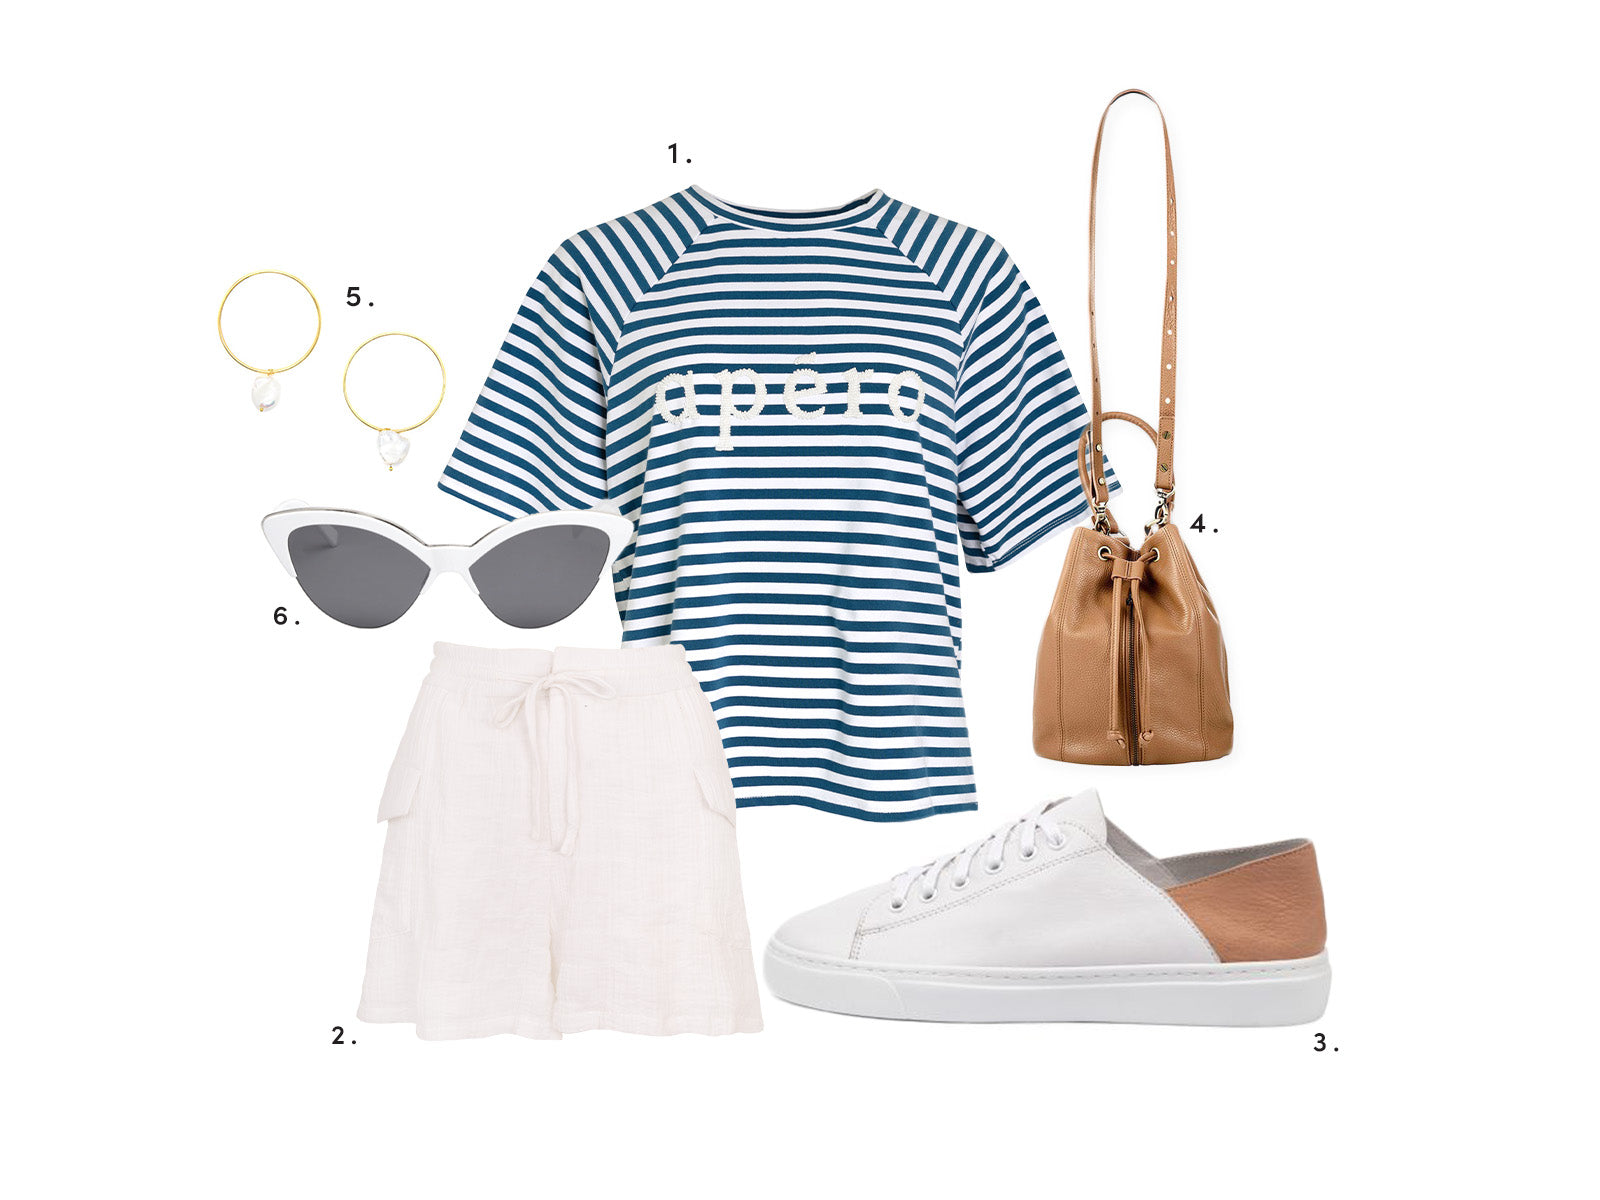 the expecting mum outfit with the Multi Striped Oversized Logo Tee, Capri Drawstring Shorts and accessories